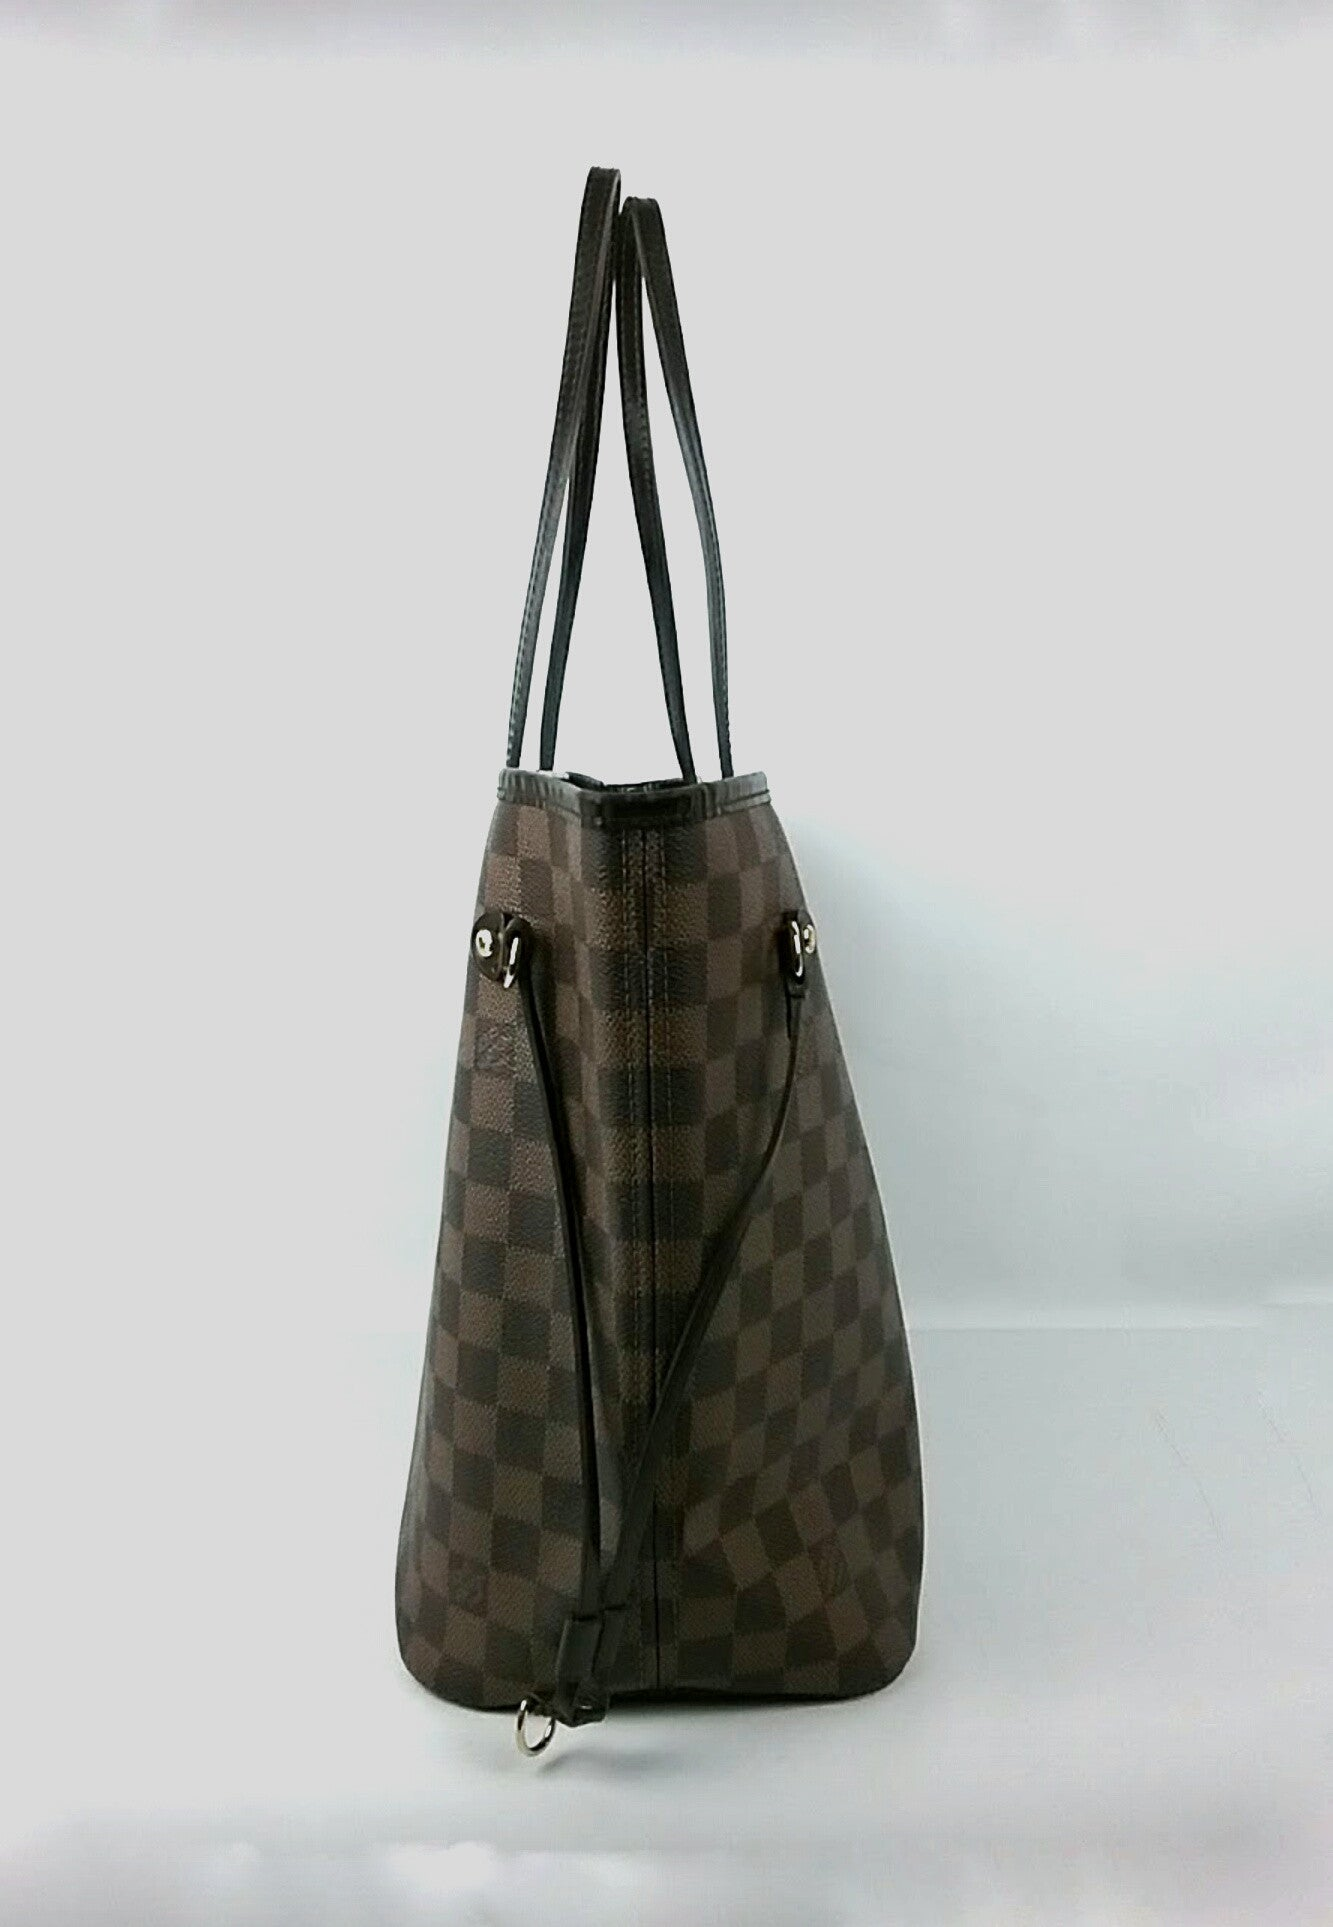 Damier Ebene Neverfull MM Bag - ON LAYAWAY